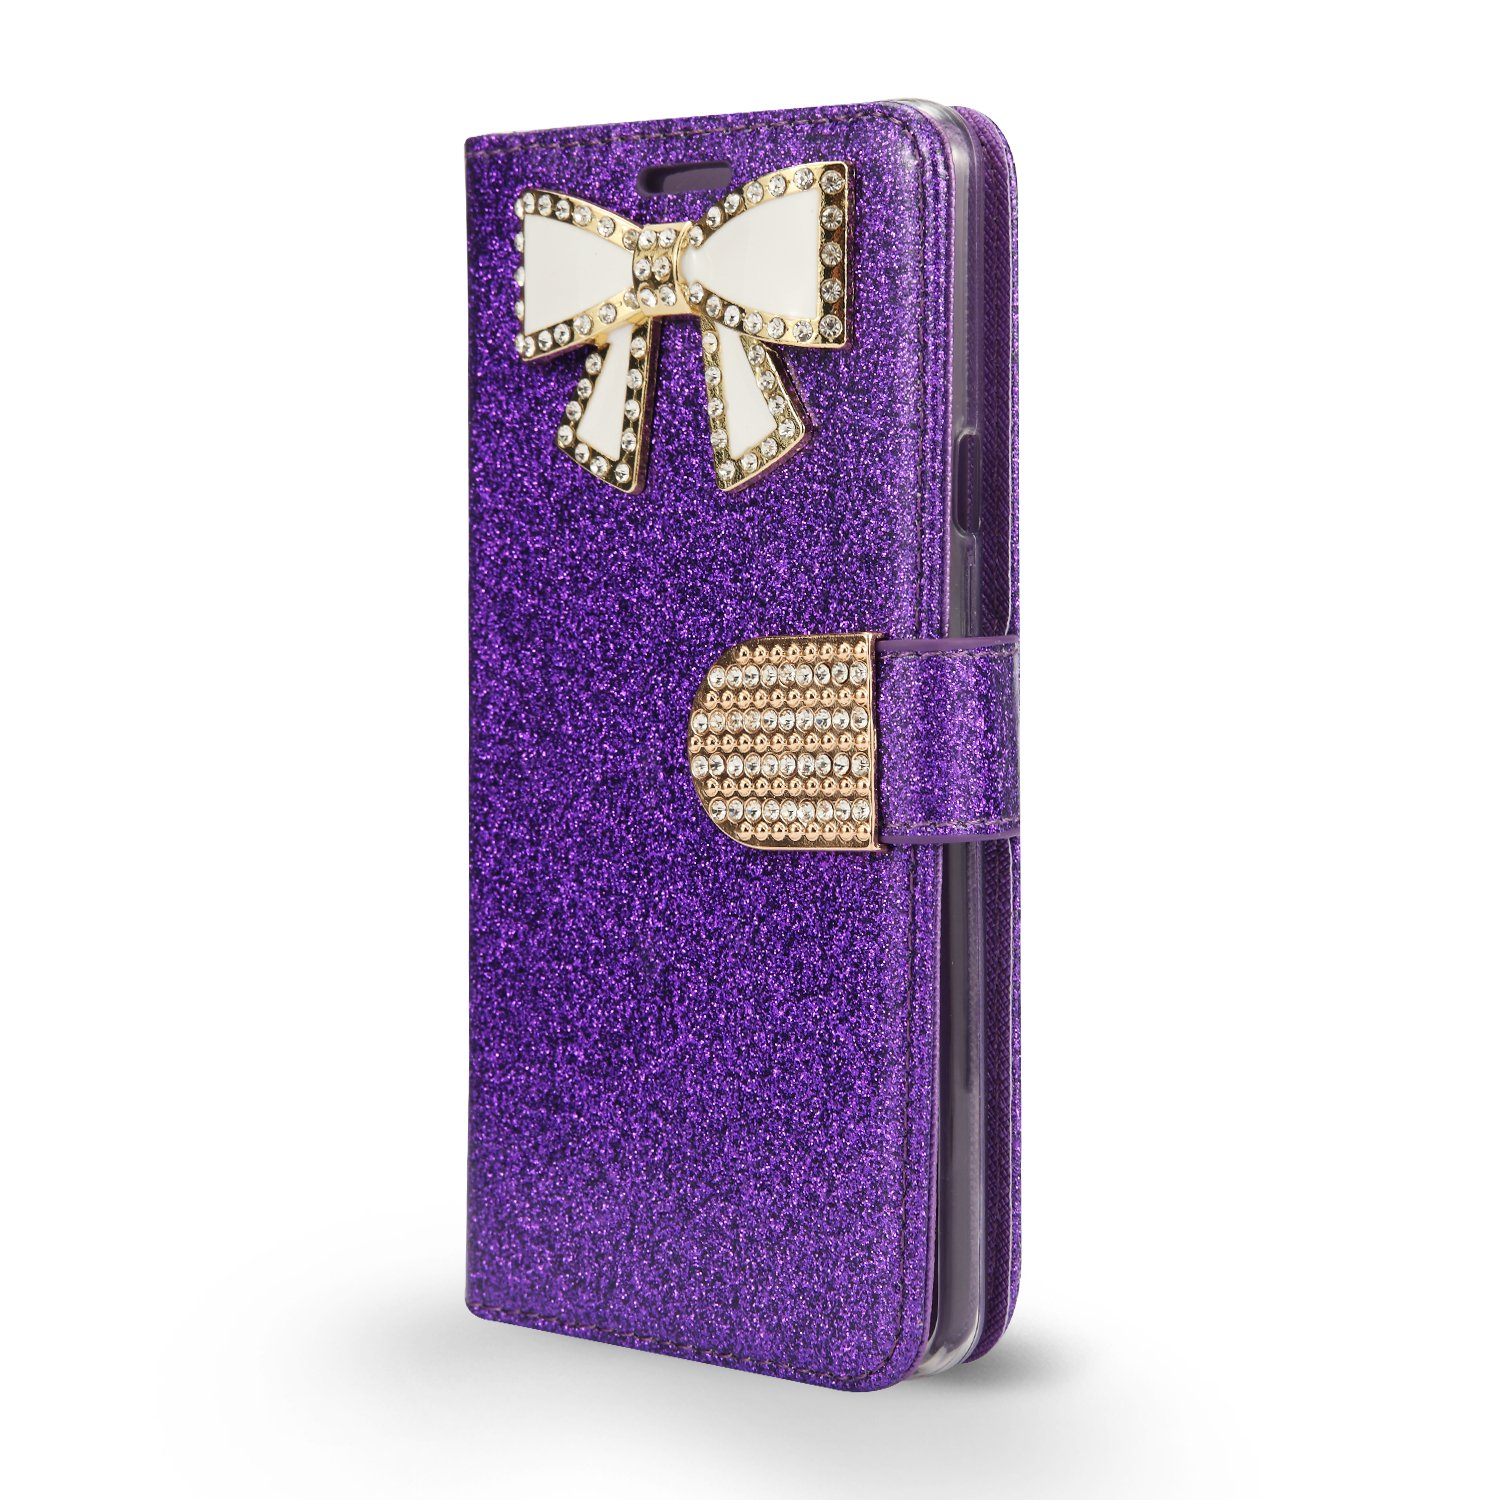 Moto G6 Play Case, Moto G Play 6th Gen Case, Shiny PU Leather Sparkle Rhinestone Butterfly Wallet Flip Phone Protective Case with Card Slots for Moto G6 Play (6th Generation) (WBL Dark Purple)